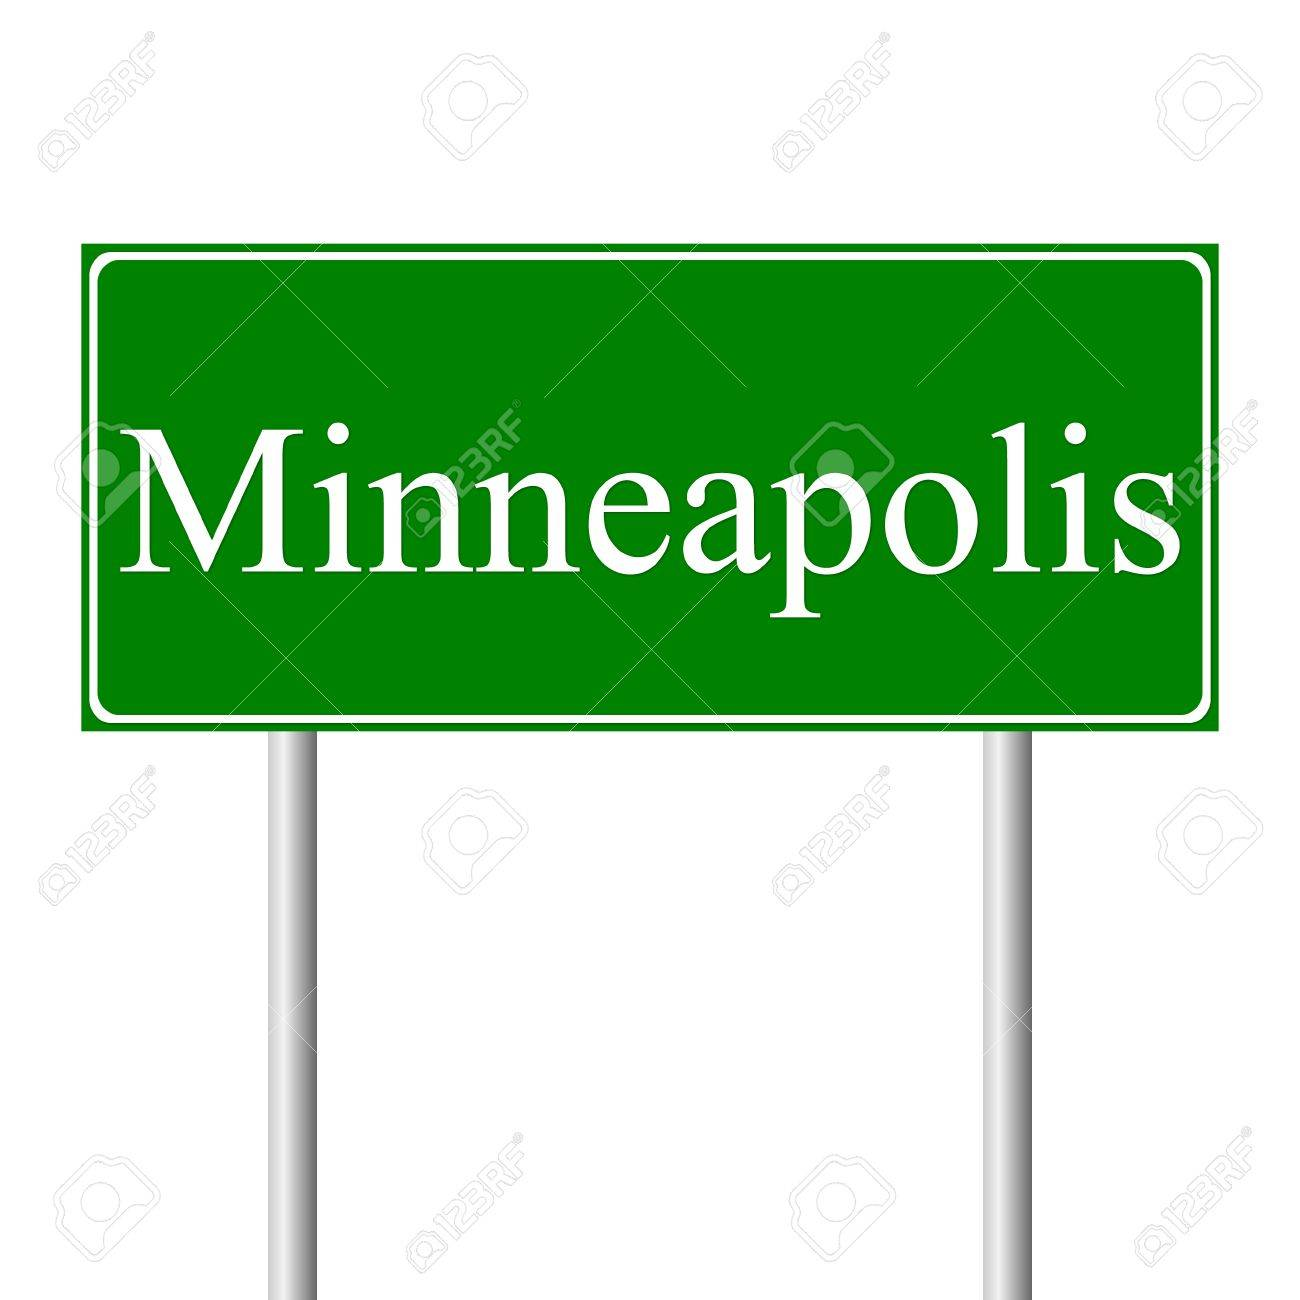 Minneapolis green road sign isolated on white background Stock Vector - 11760872